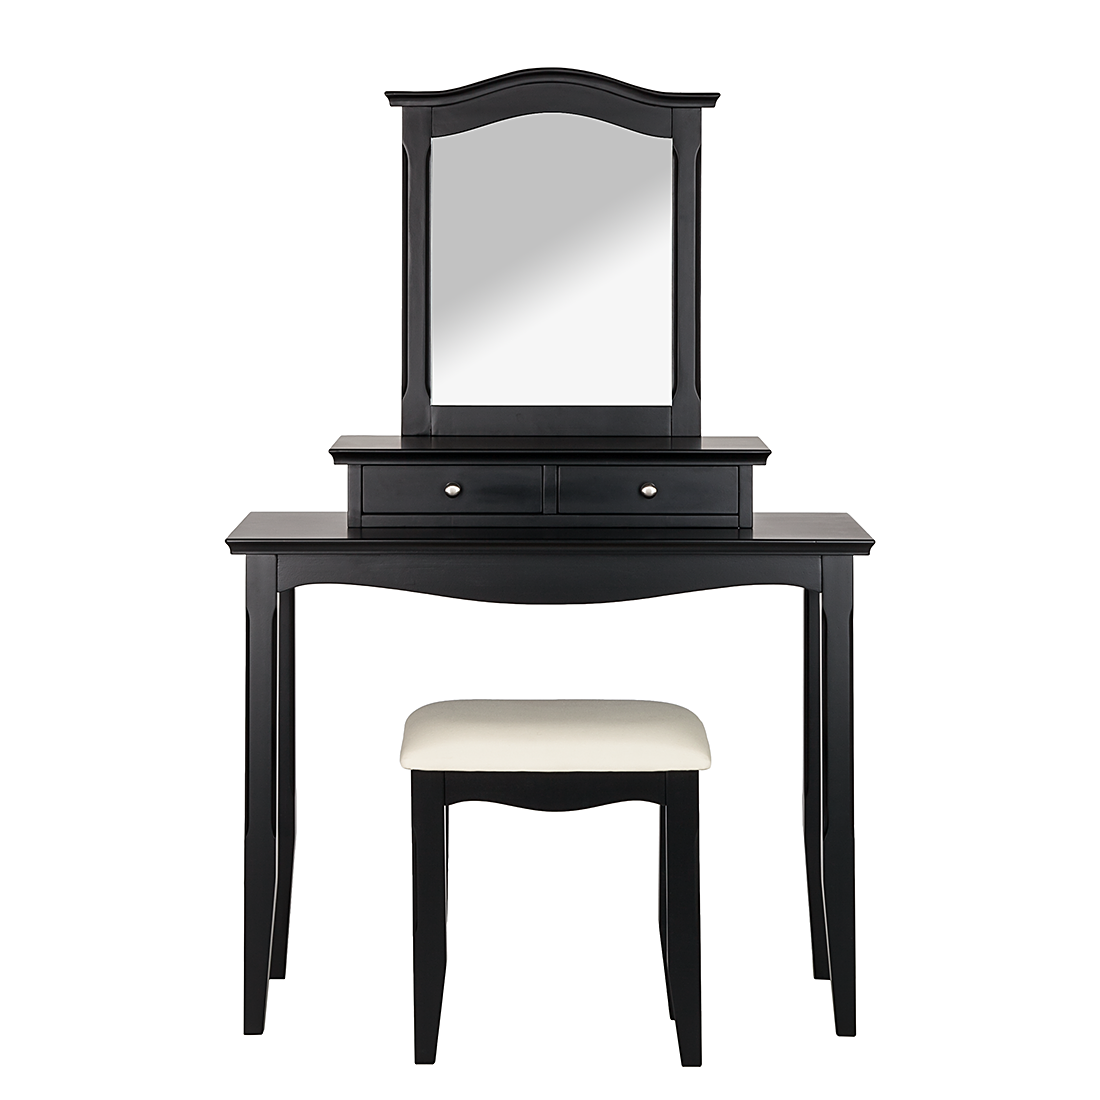 schminktisch inkl hocker akazie schwarz frisiertisch. Black Bedroom Furniture Sets. Home Design Ideas